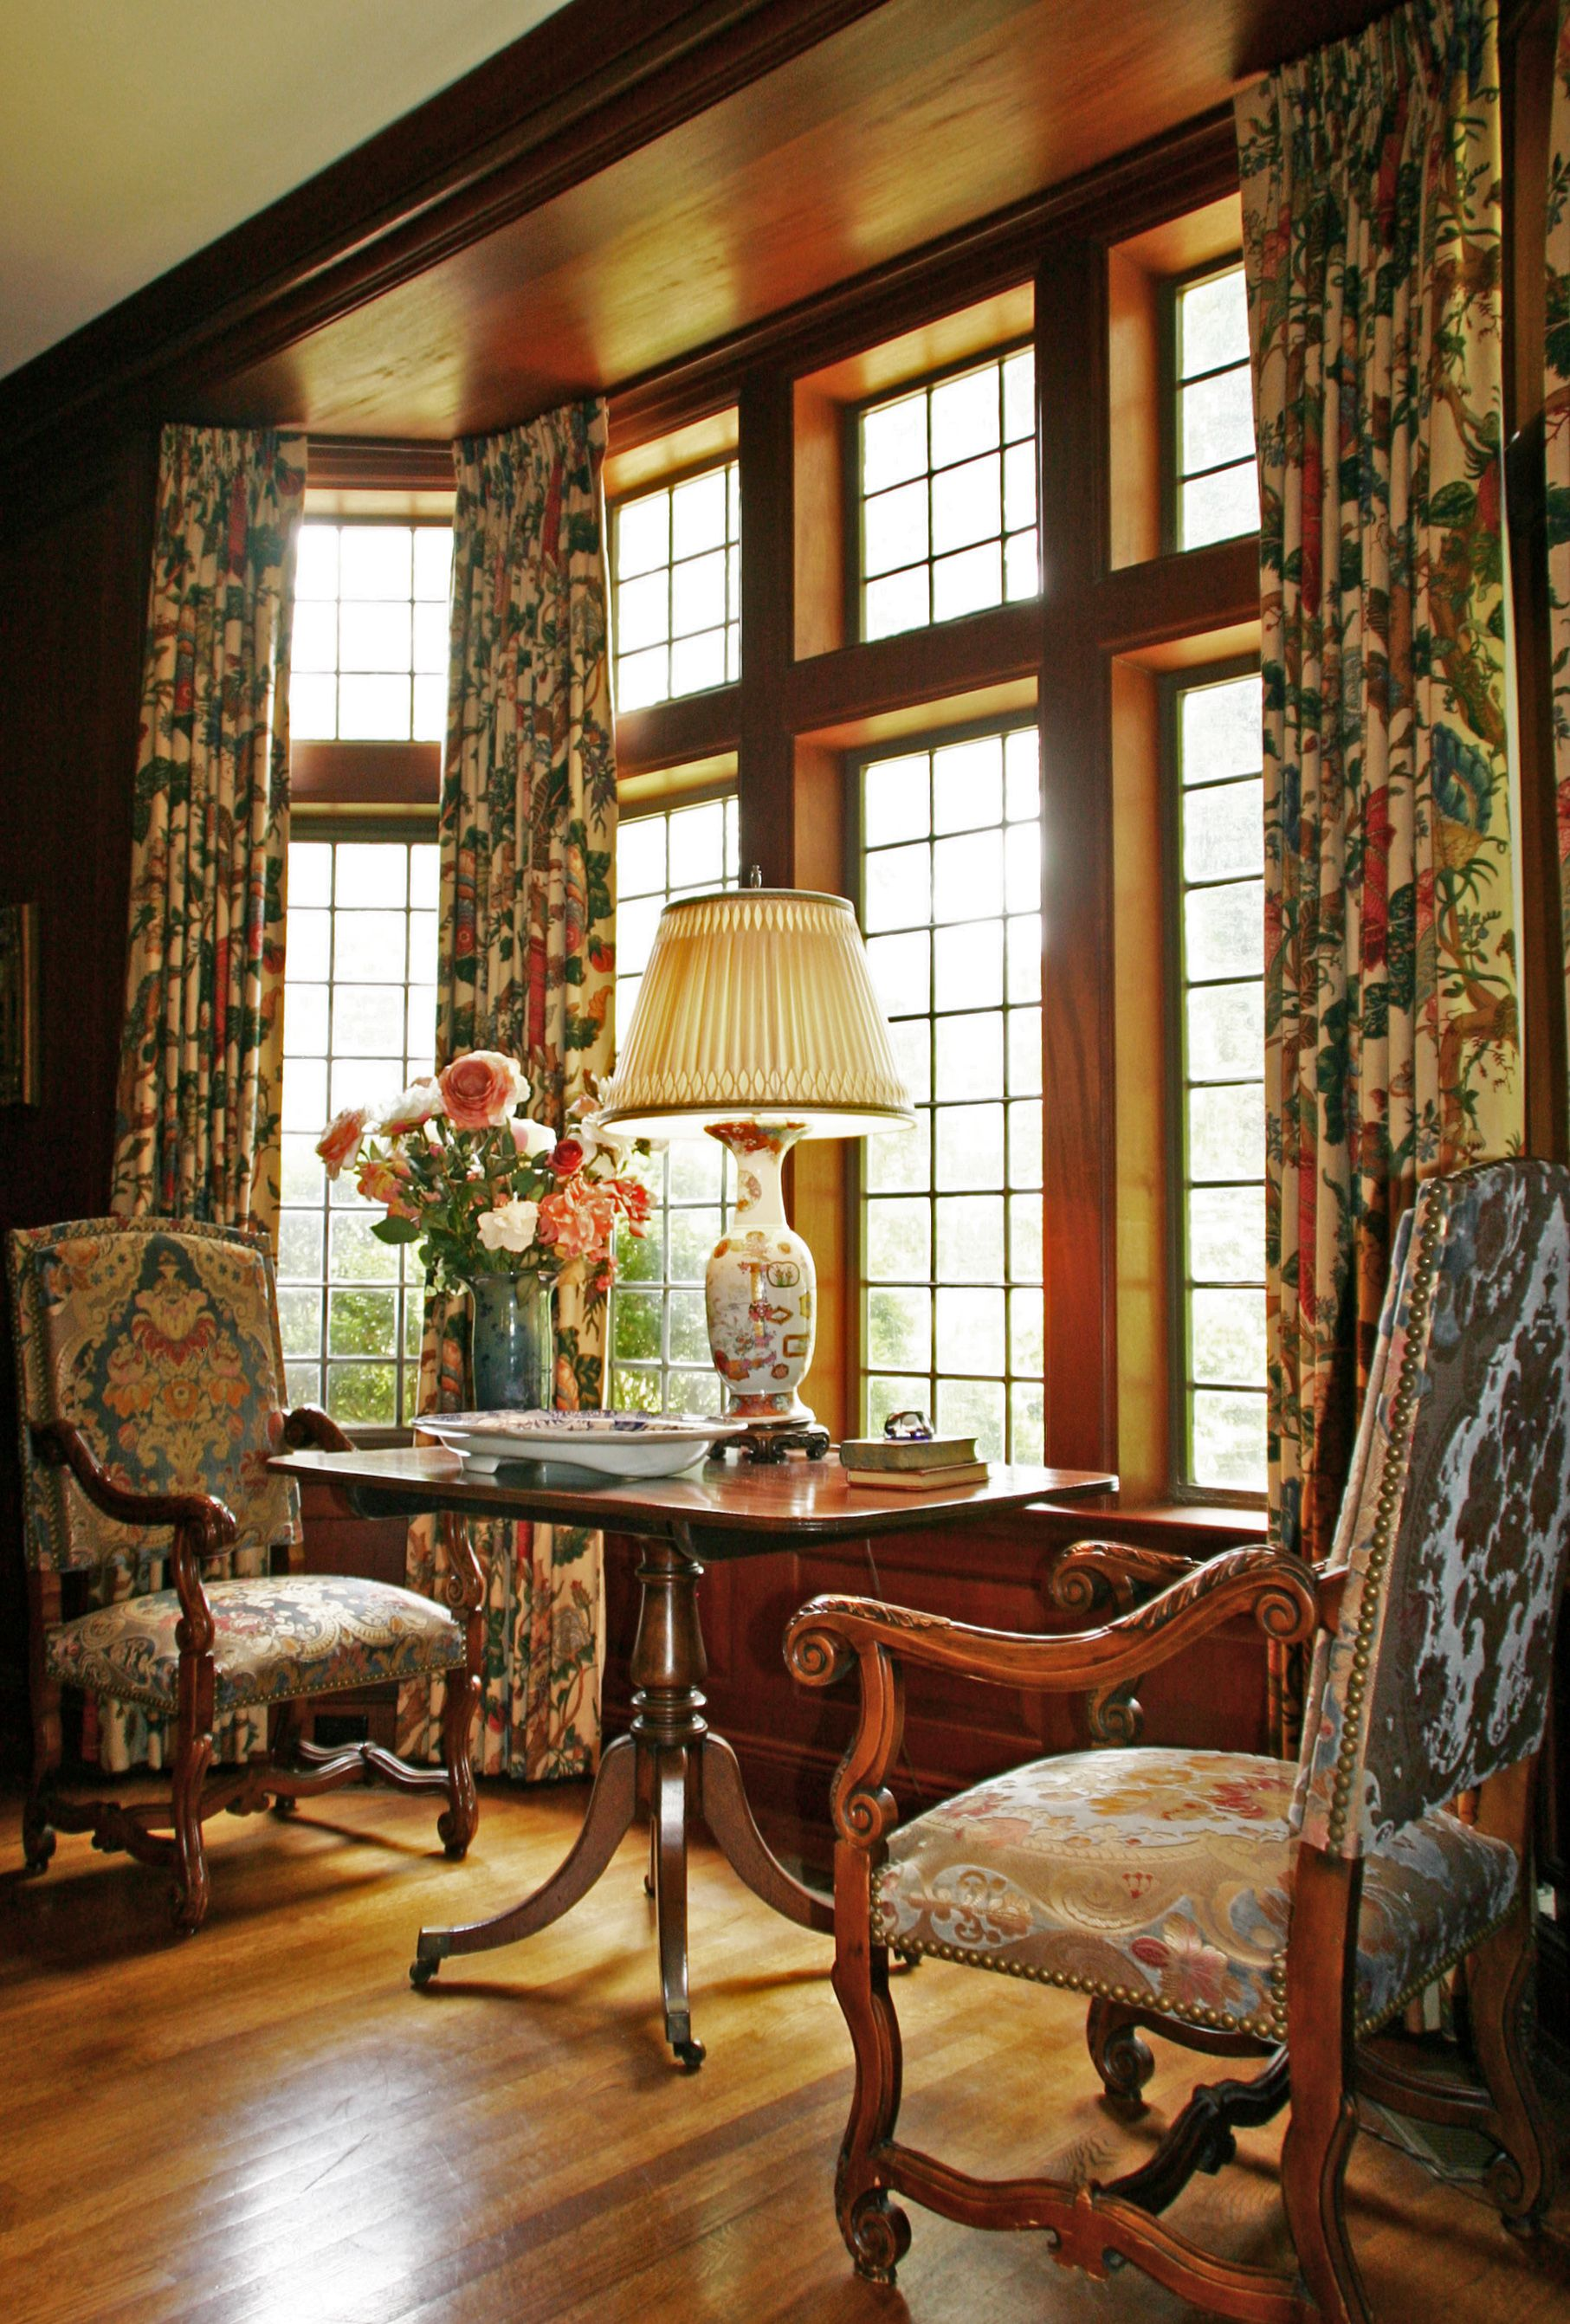 English Country House Dining Room: Cushions, With The Imprint Of Our Heads Upon Them, Lolling